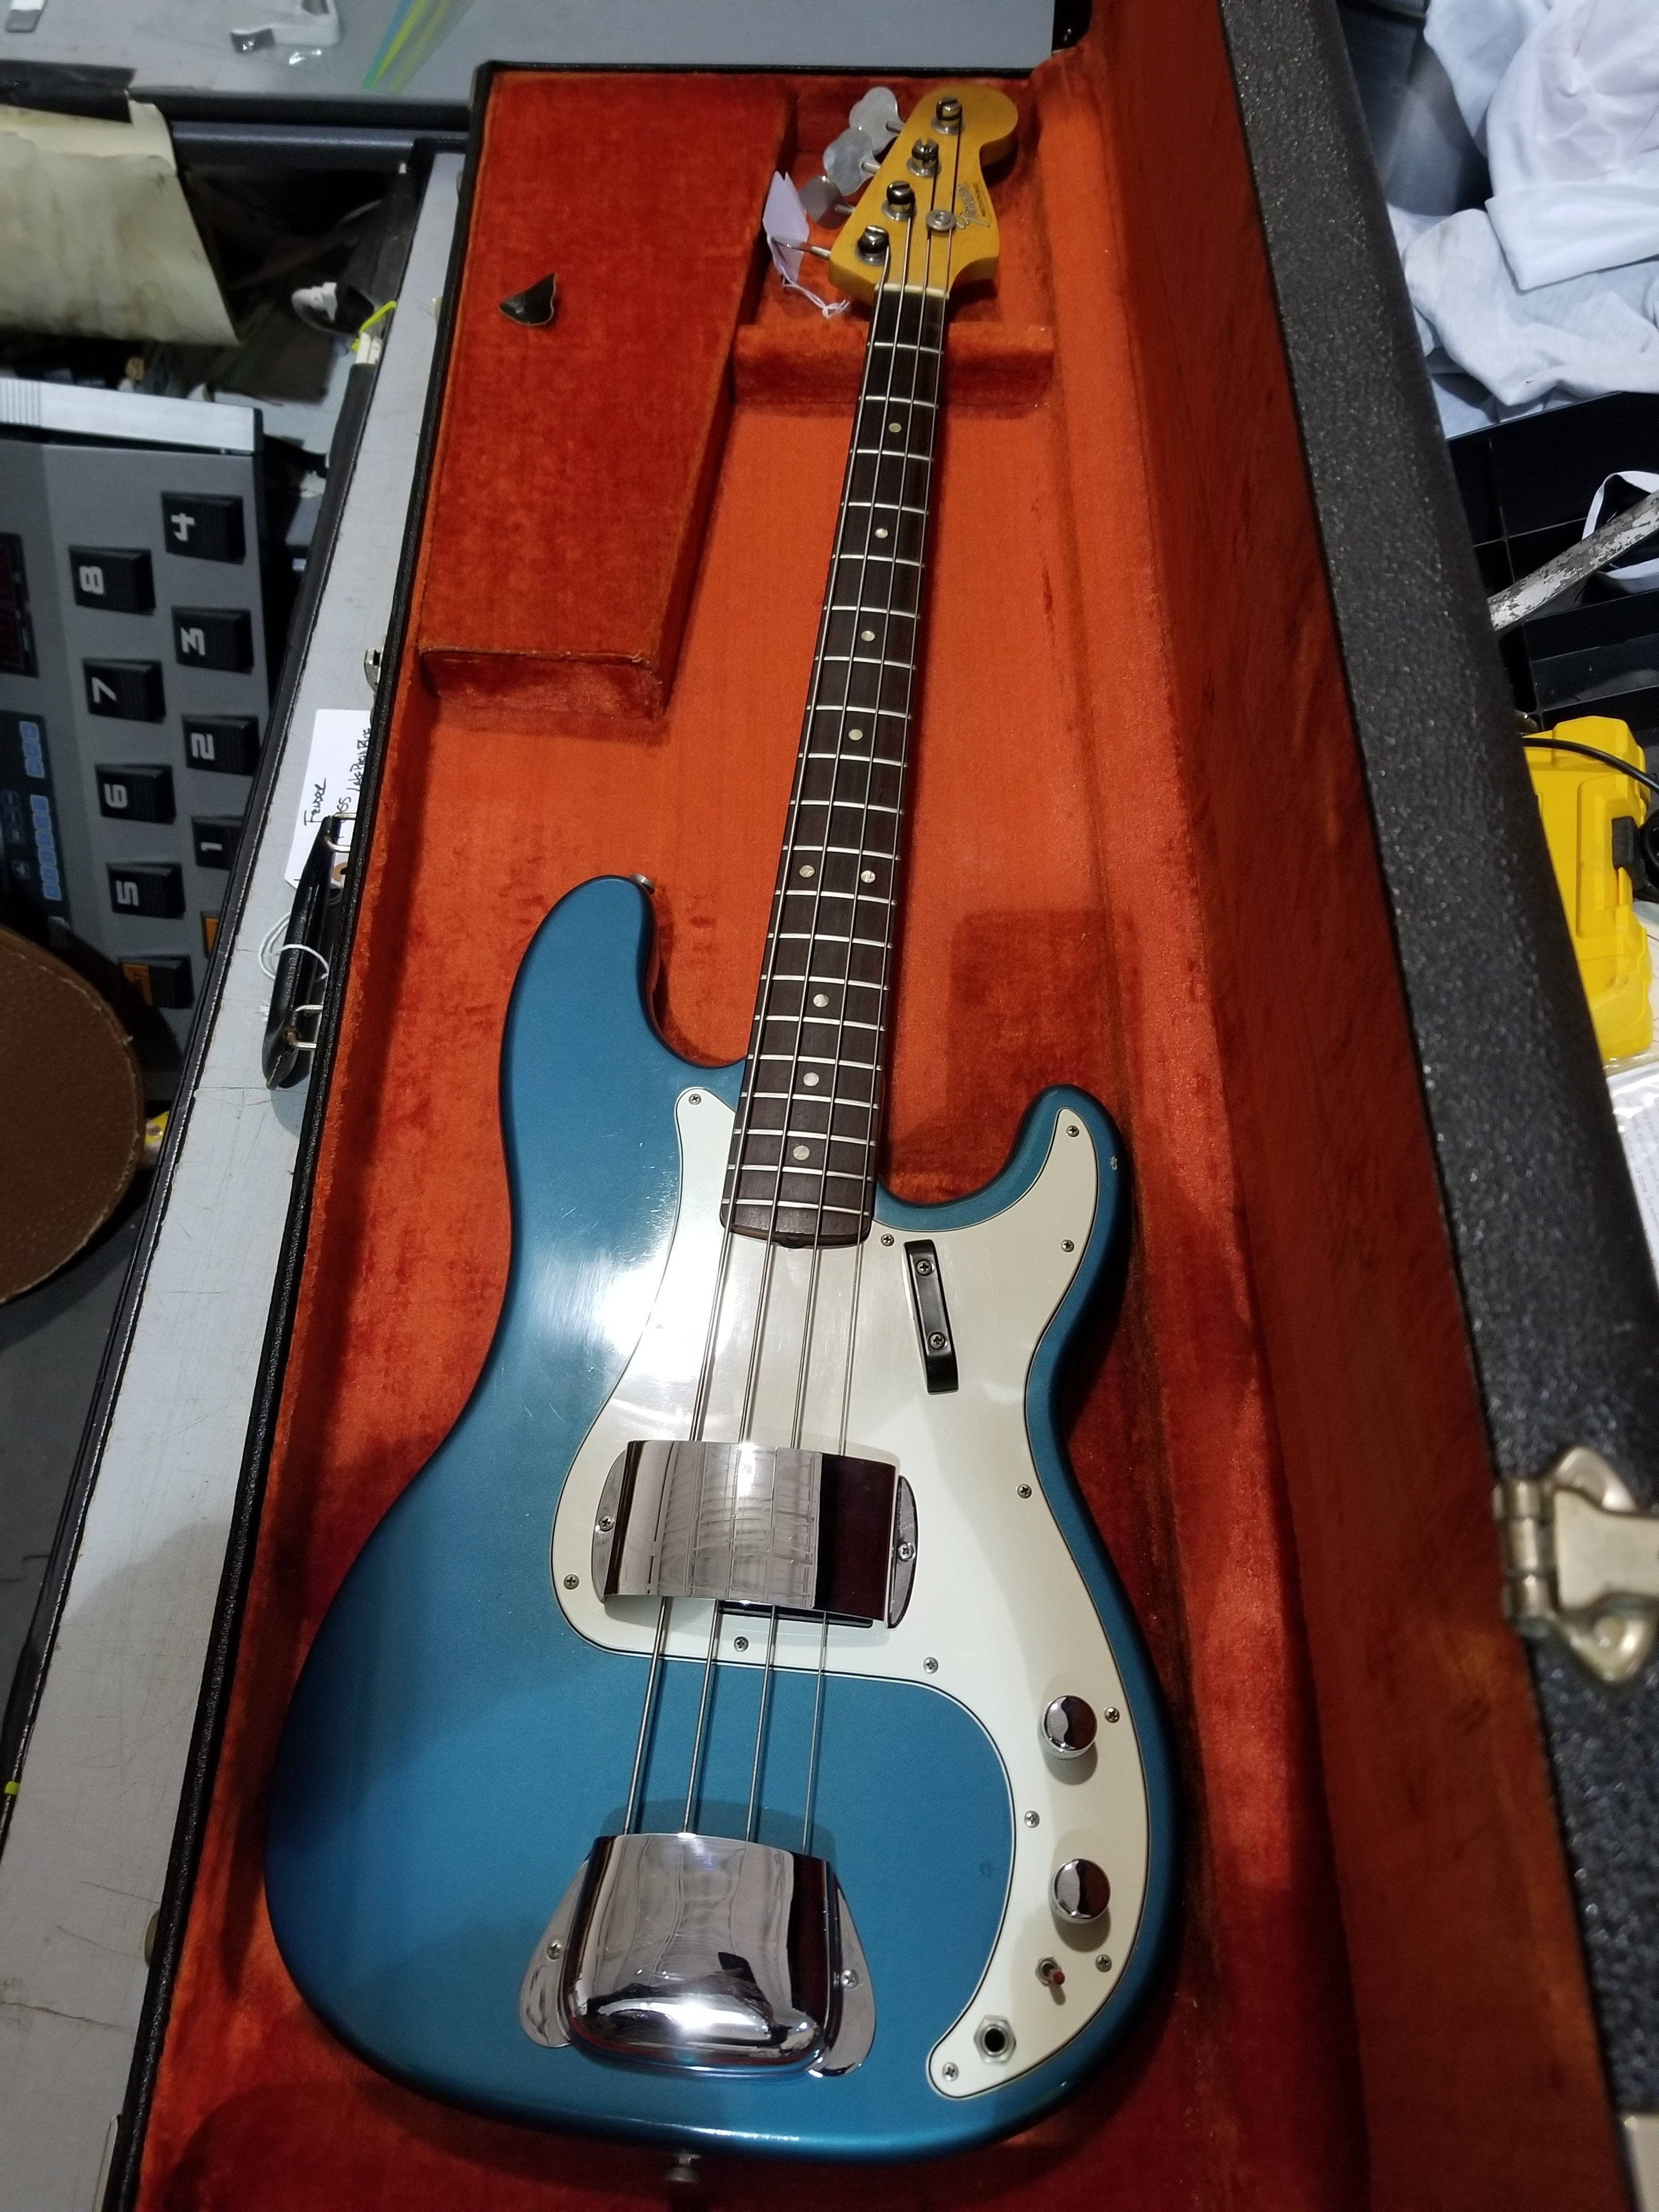 1966 FENDER Precision Bass Electric Bass Lake Placid Blue HSC Local Pickup Only!